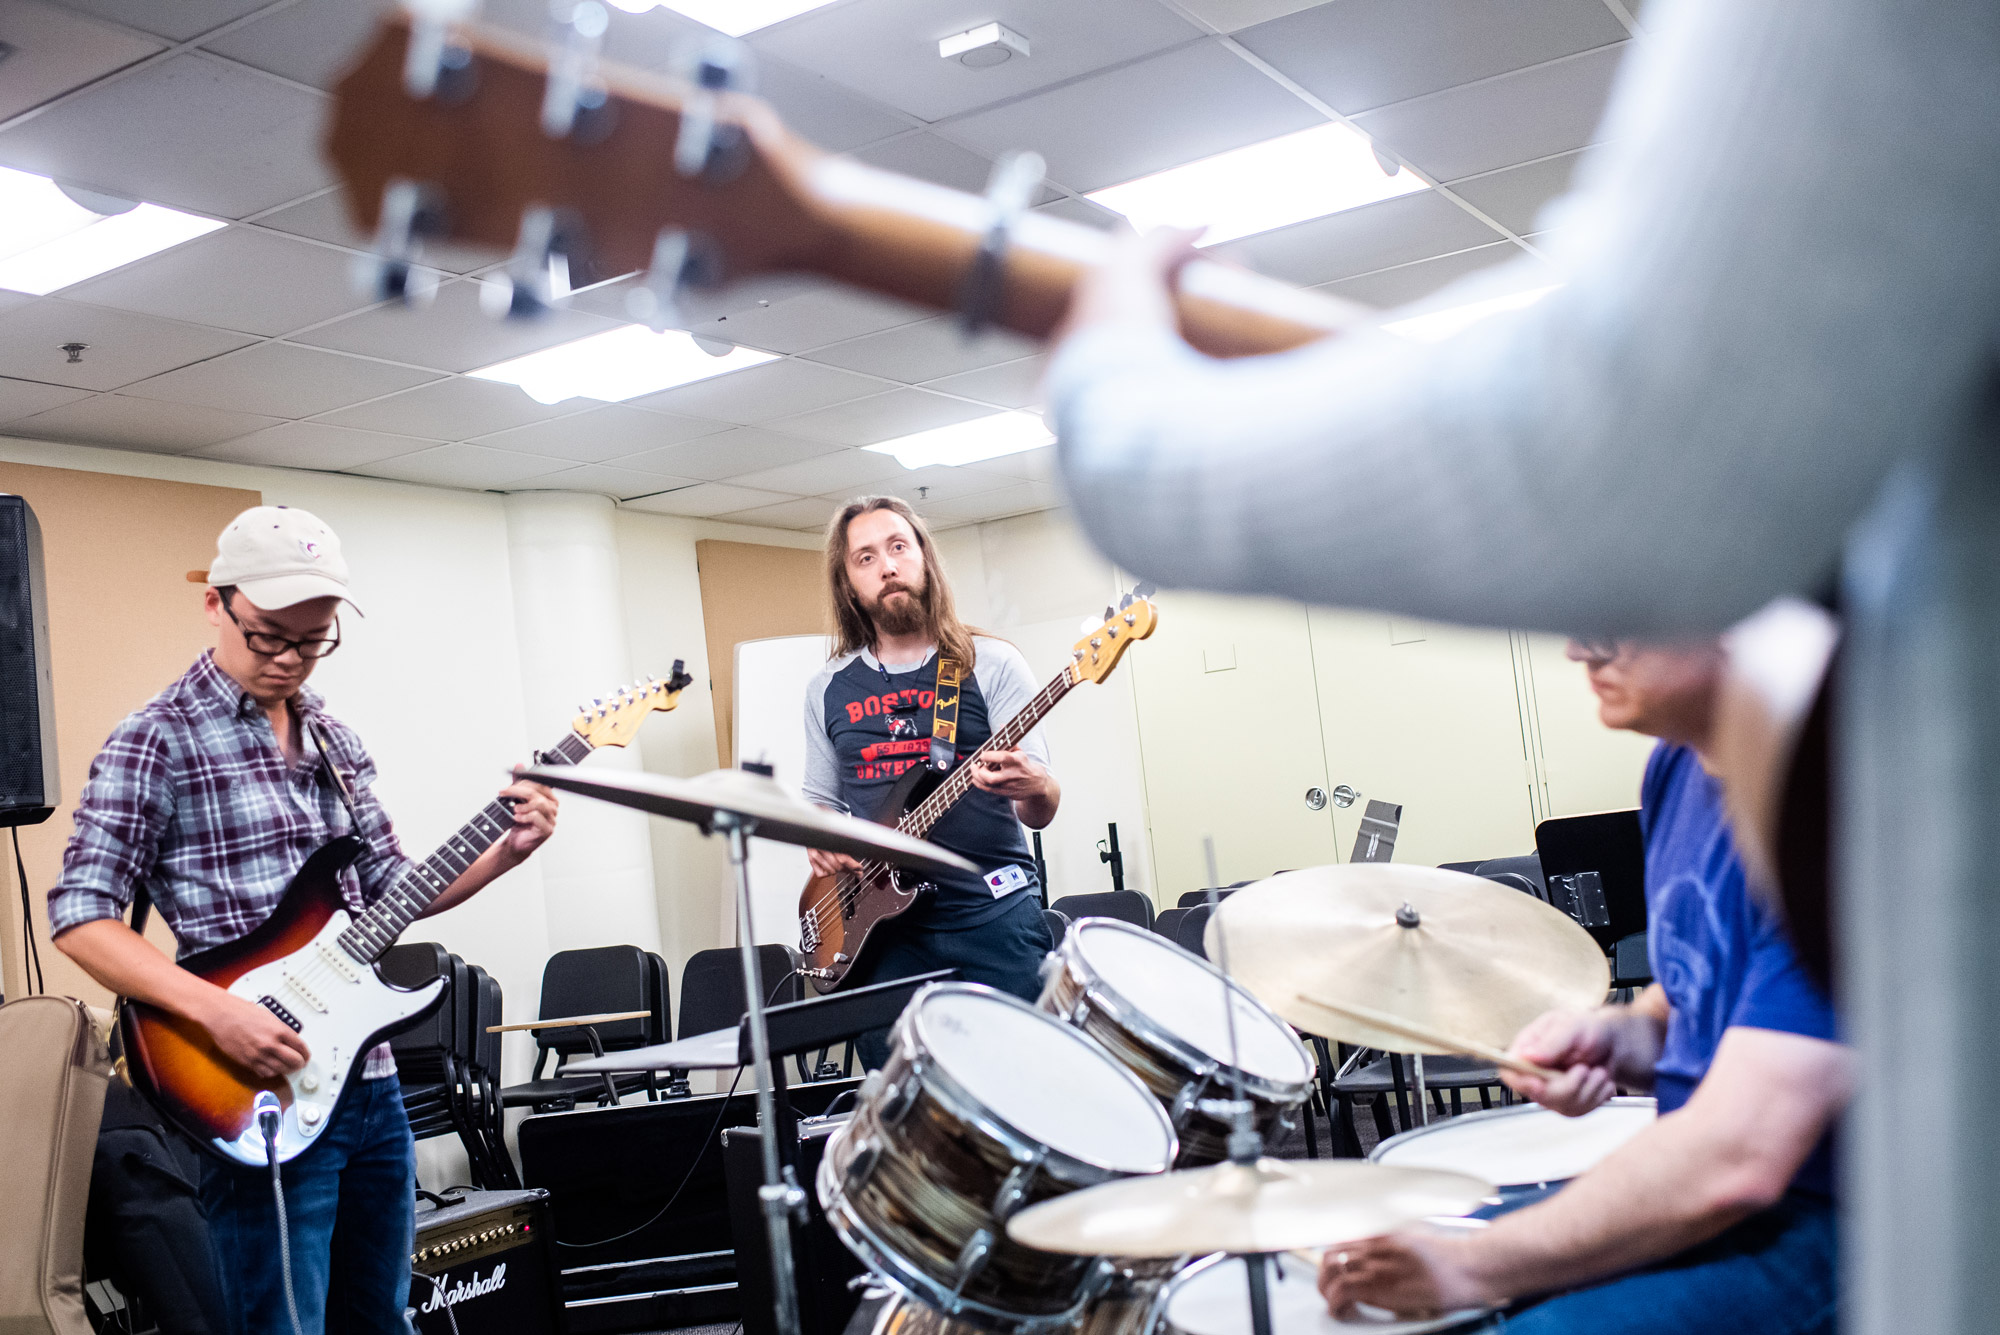 Michael Soo (left) and Aidan Linden getting ready to kick out the jams in Rock Band Performance & Pedagogy, a Summer 2 class at the College of Fine Arts